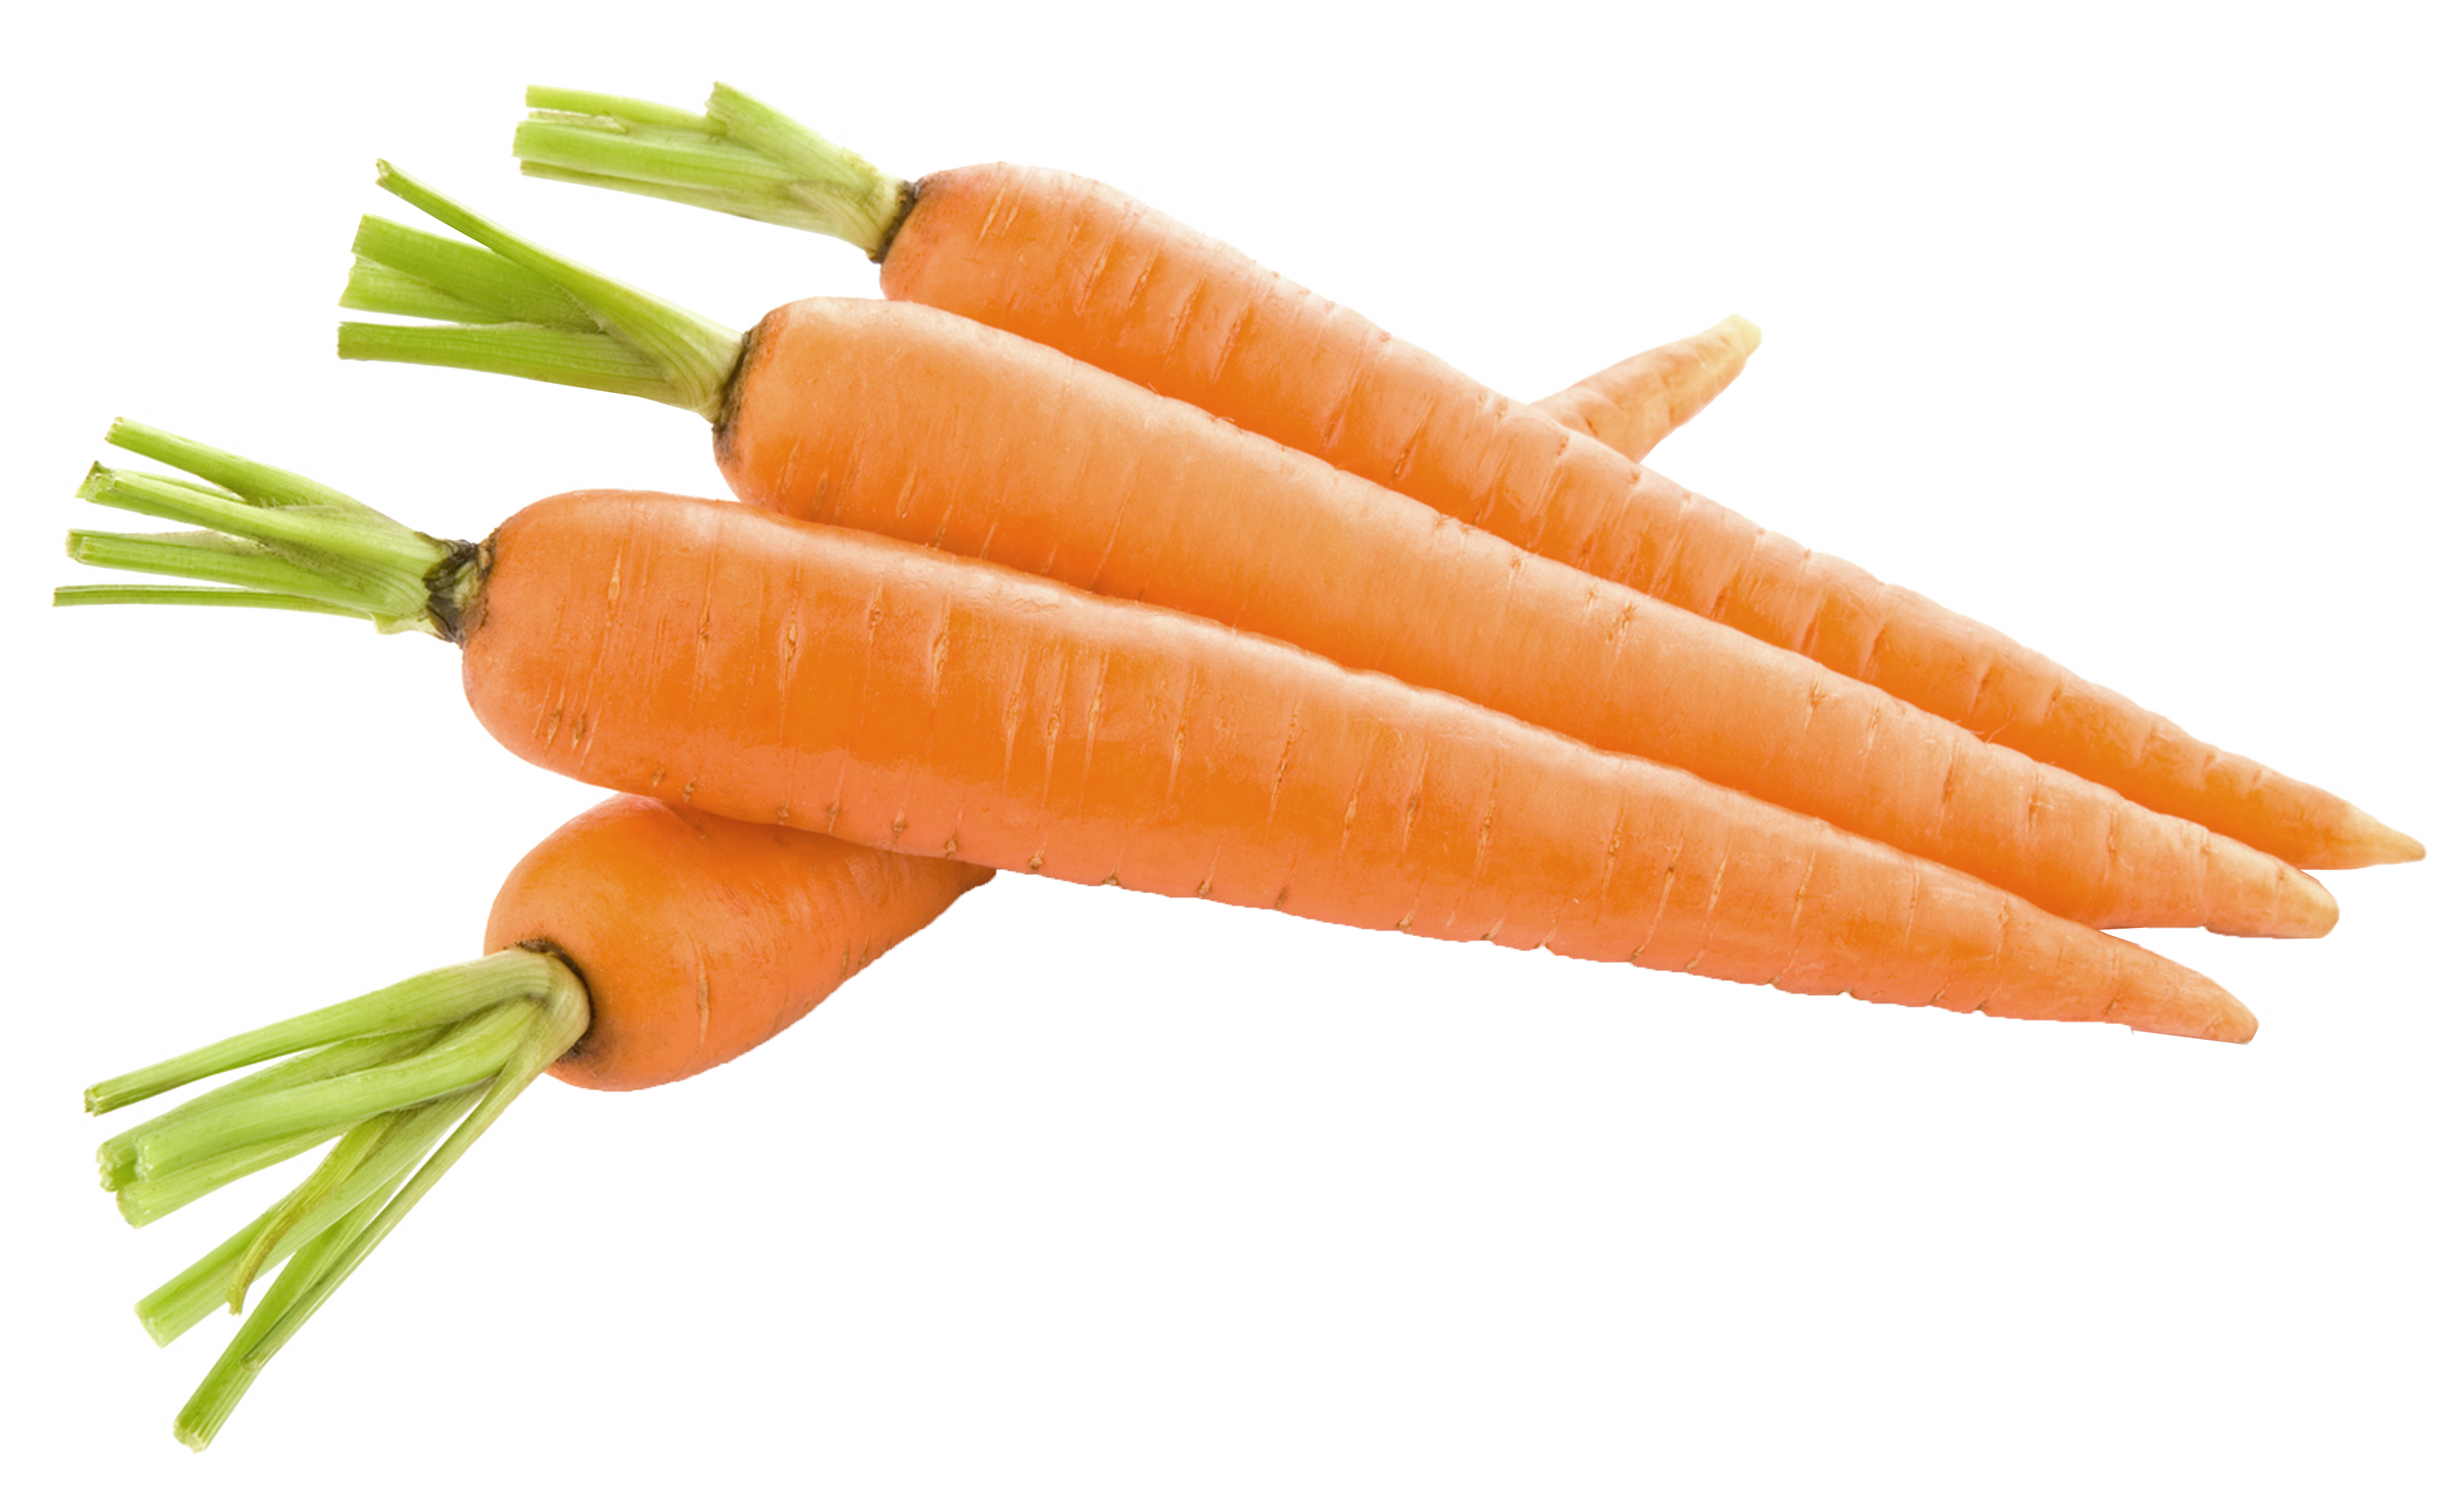 Carrot PNG - 19914